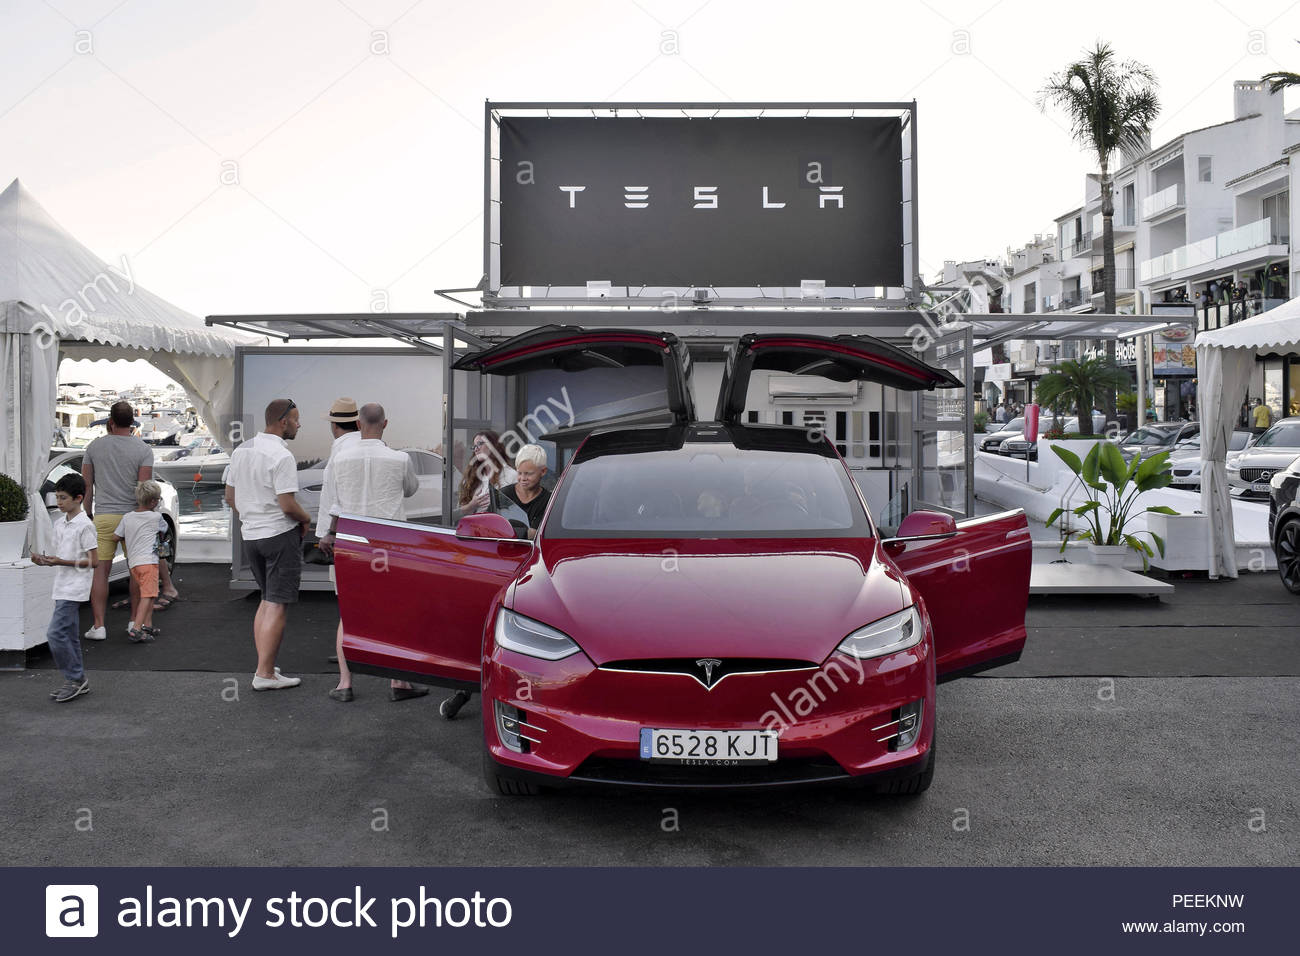 Tesla Model X demonstration - luxury electric car with gull-wing doors displayed in Puerto Banus marina south-west of Marbella Spain Europe. - Stock Image